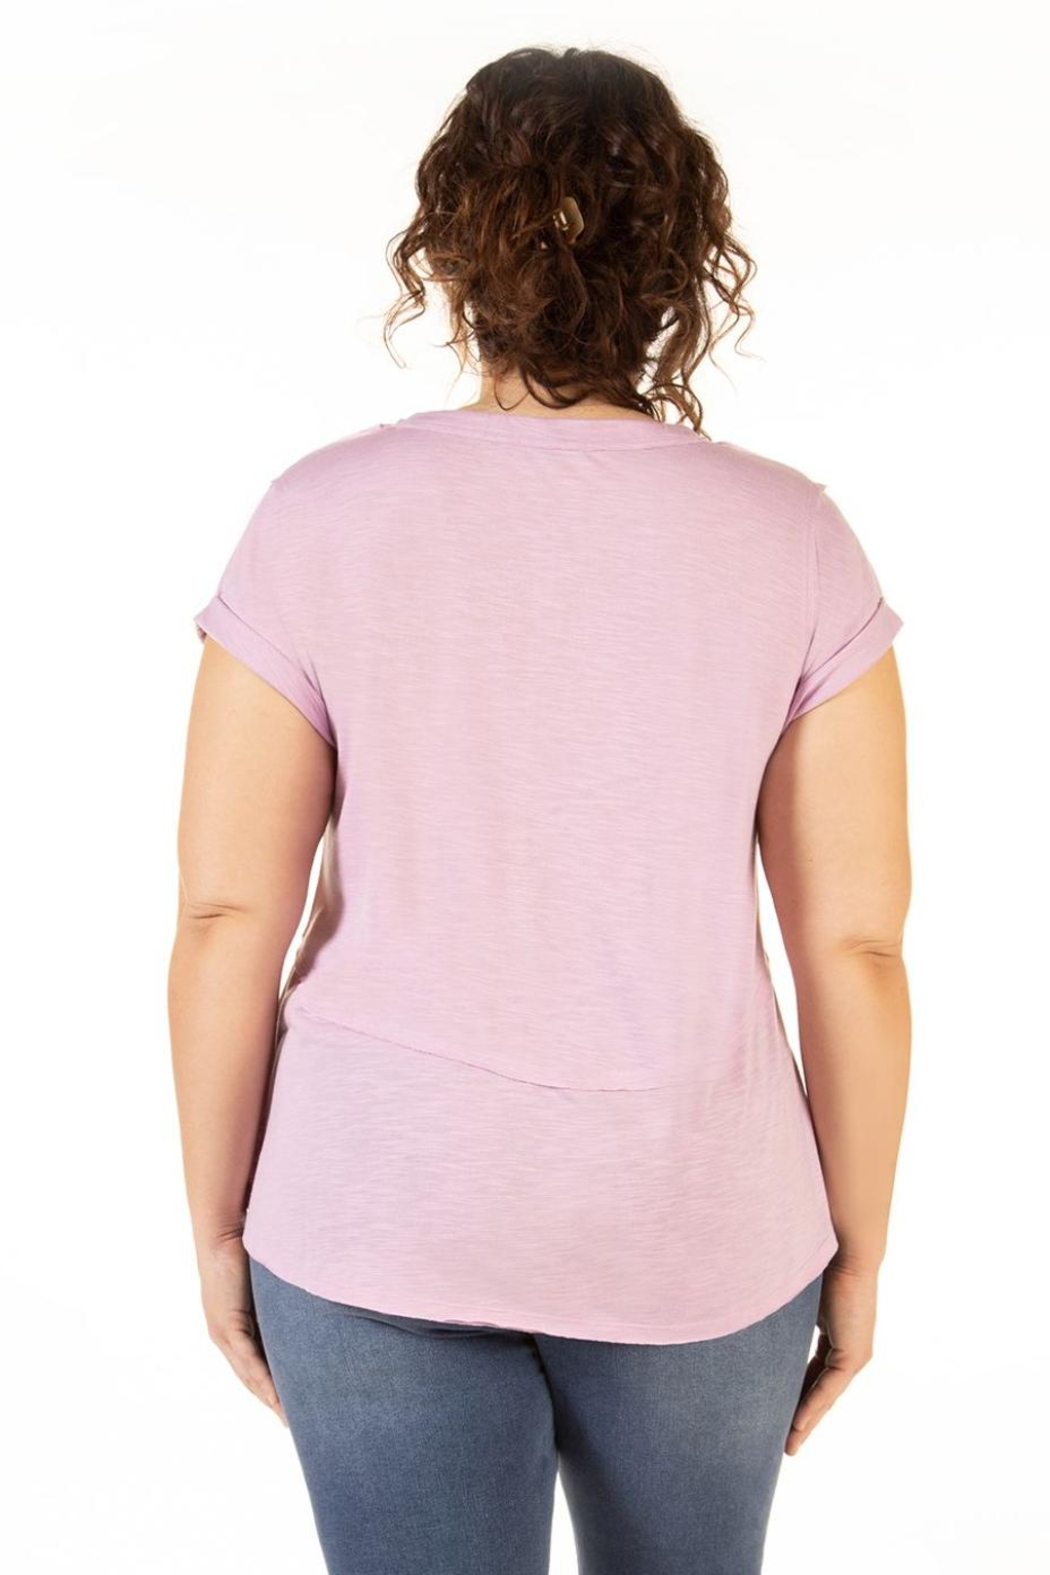 Dex Clothing Short Sleeve Slouchy Tee - Side Cropped Image